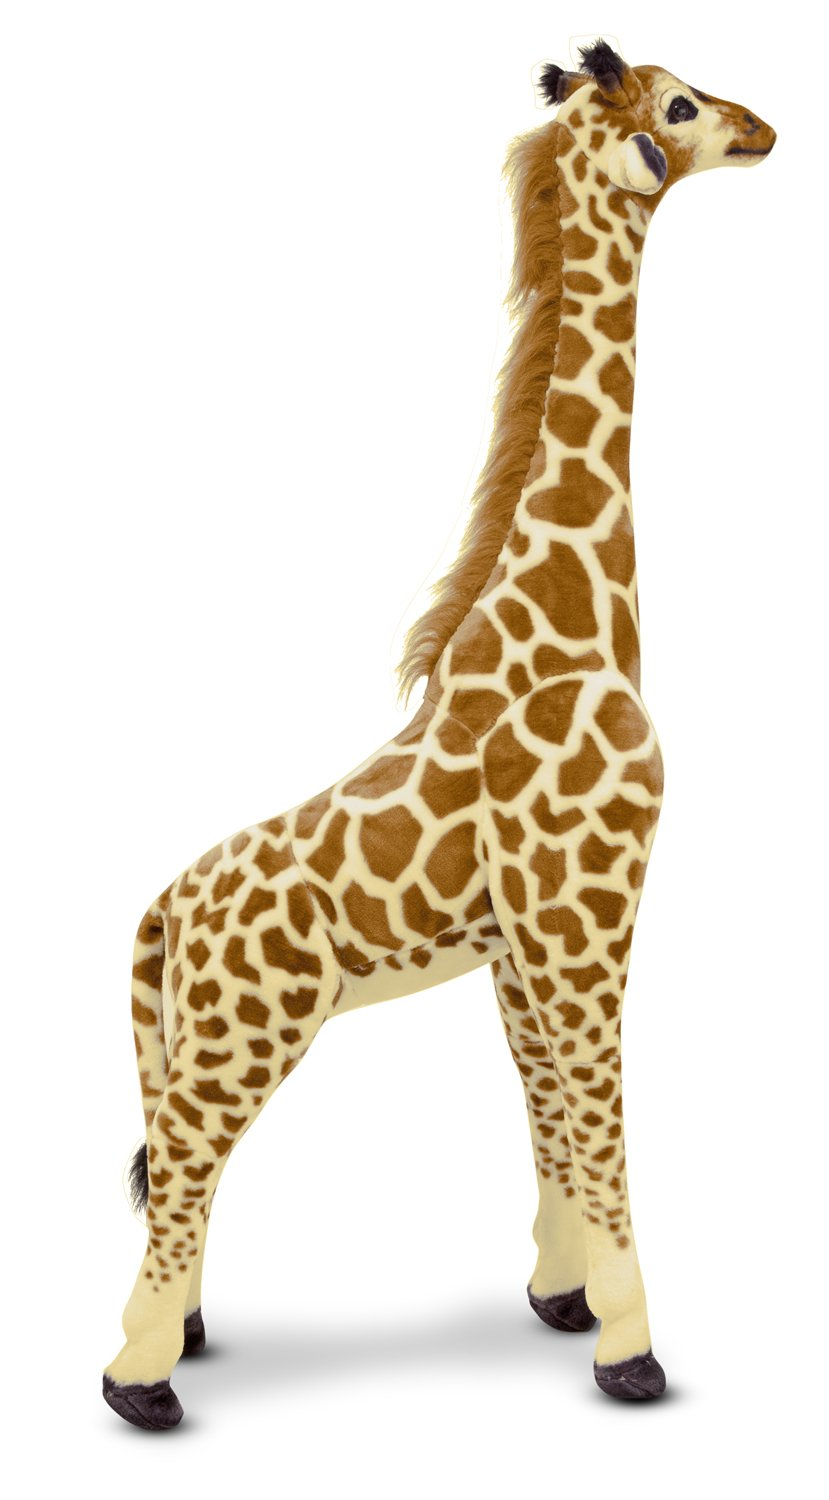 amazon com melissa u0026 doug giant giraffe lifelike stuffed animal